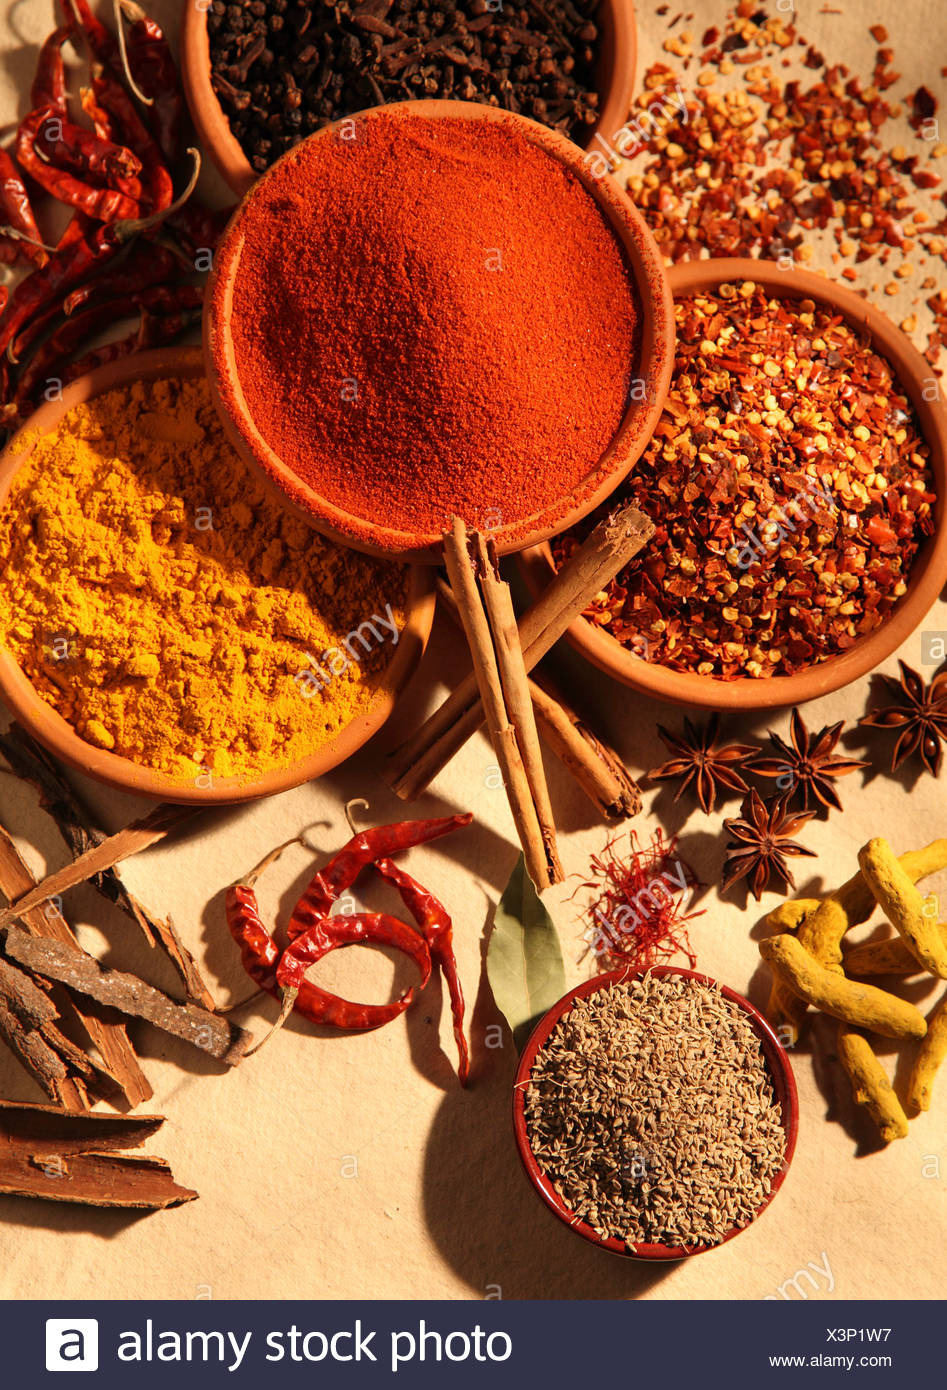 DRIED SPICES - Stock Image